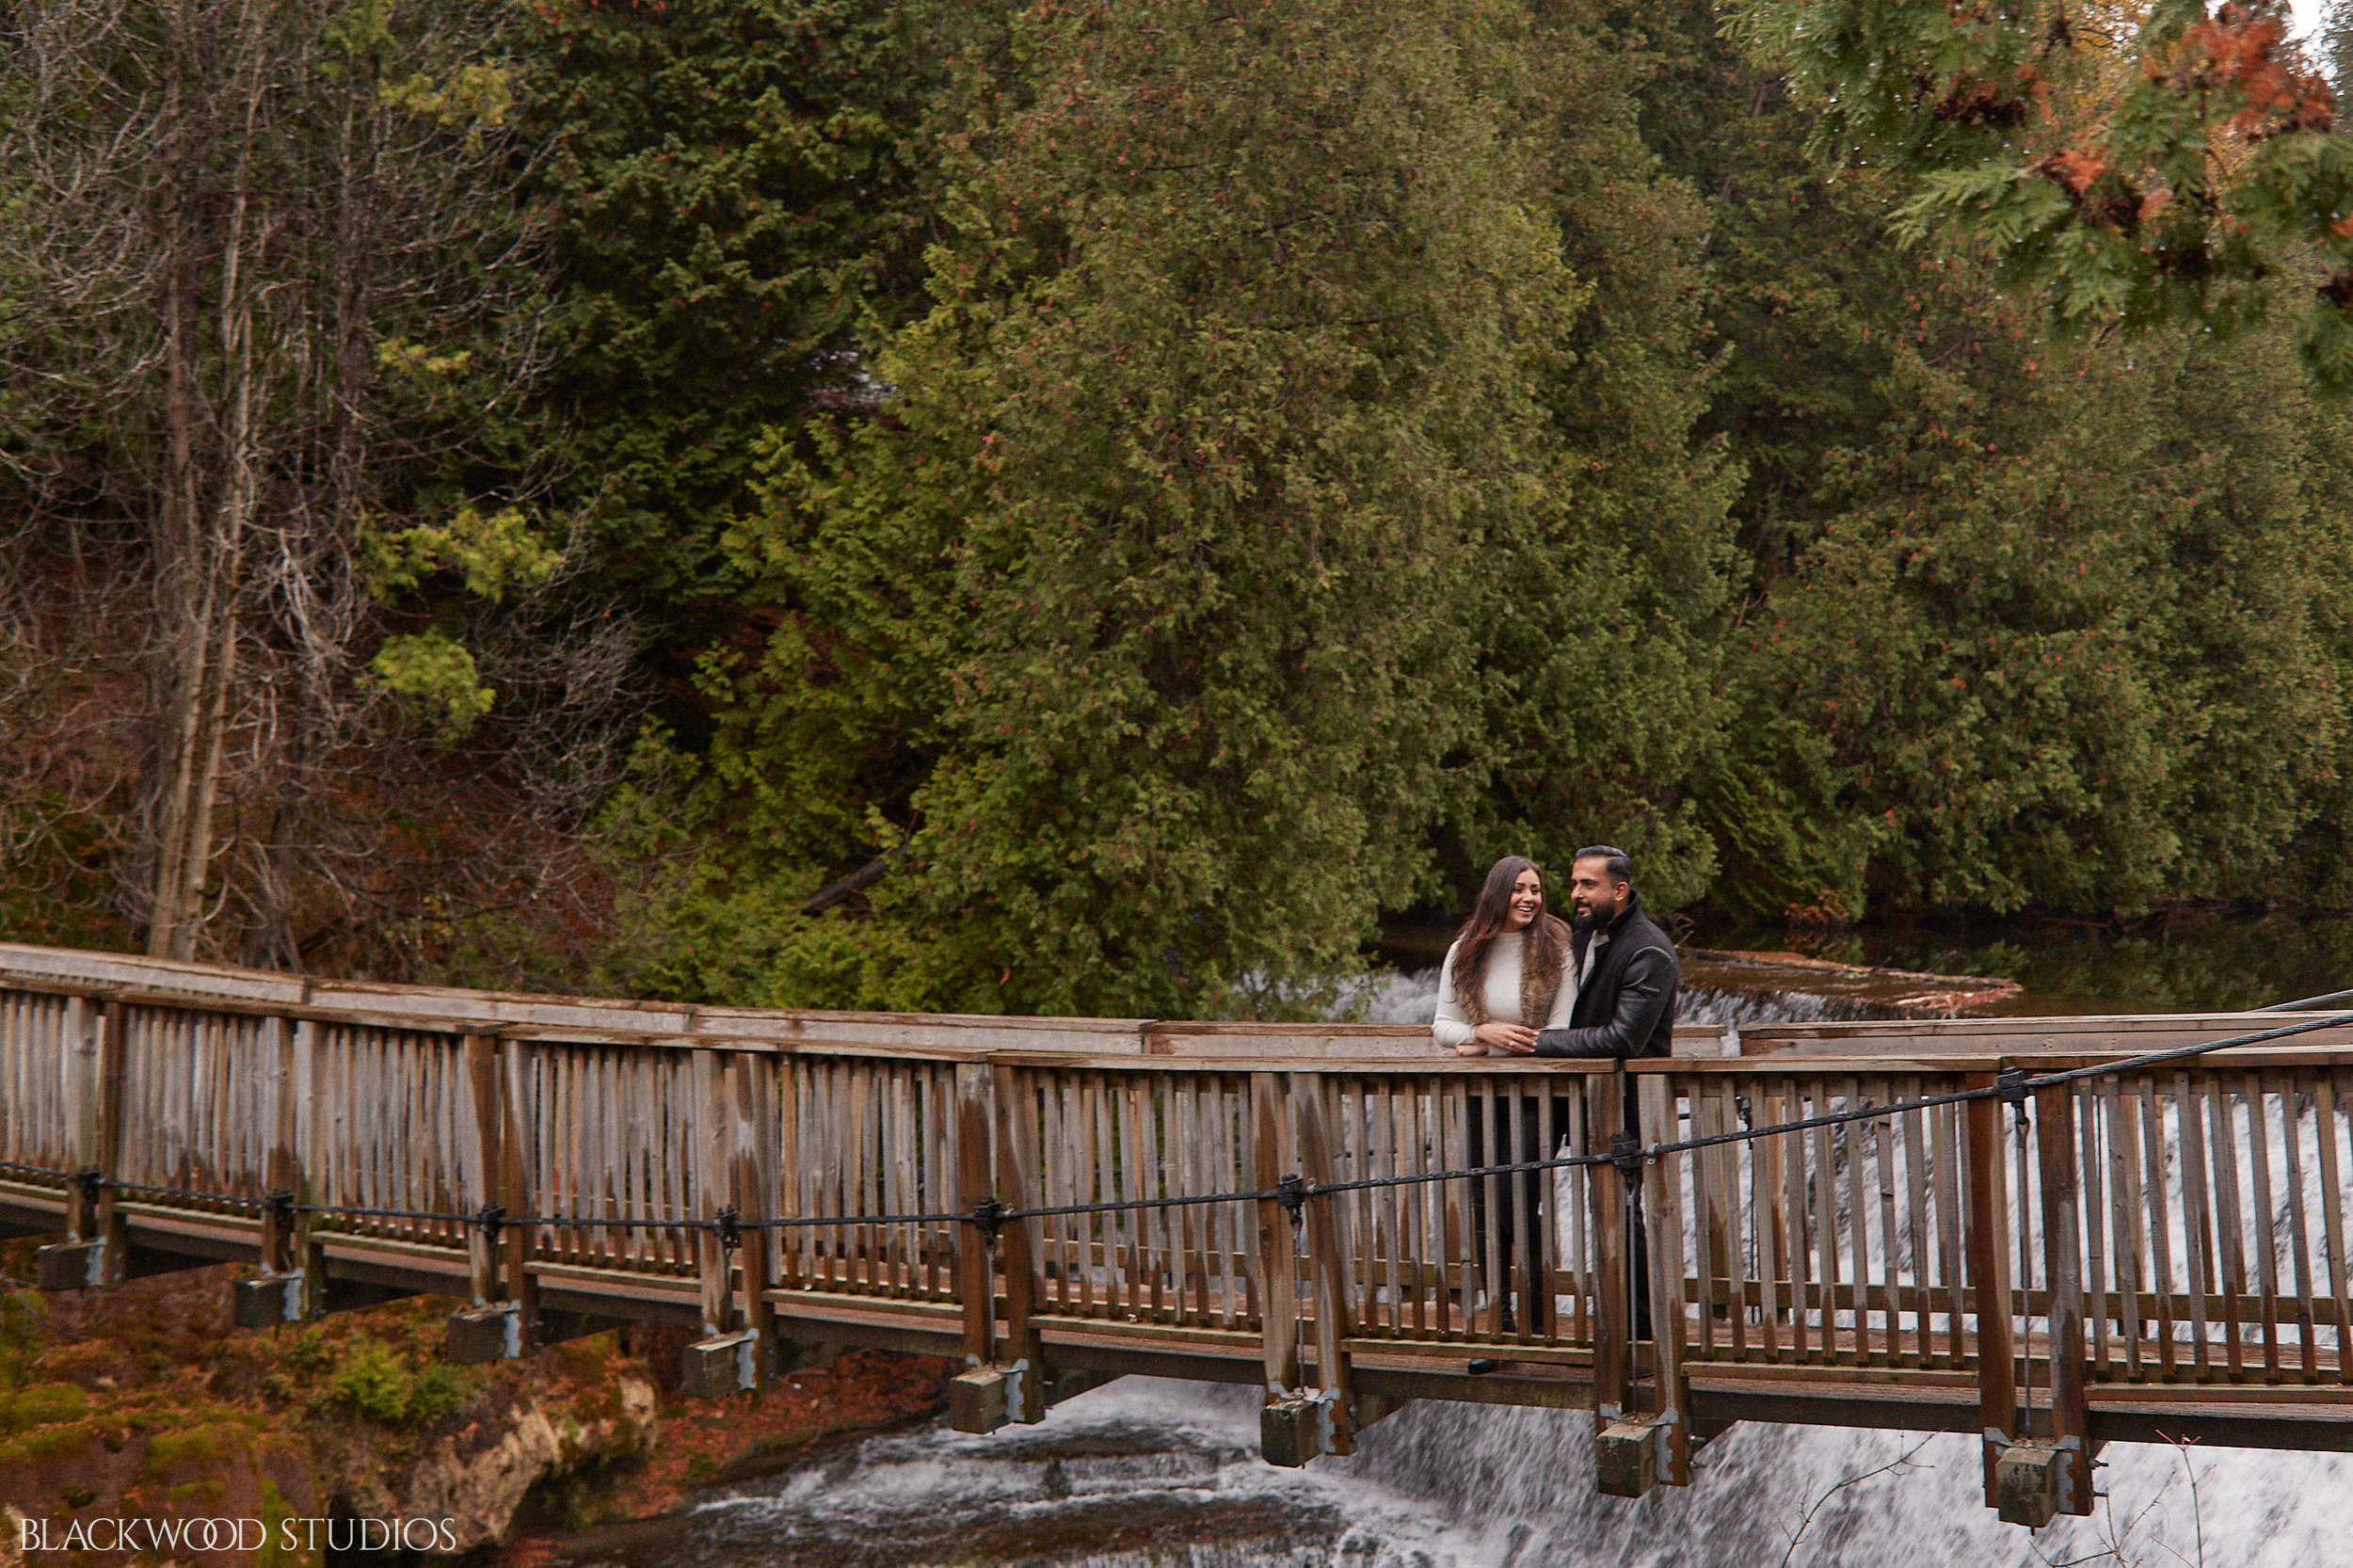 Blackwood-Studios-20181028173647-Farah-and-Zain-Engagement-photography-Belfountain-Conservation-Area-Caledon-Ontario.jpg